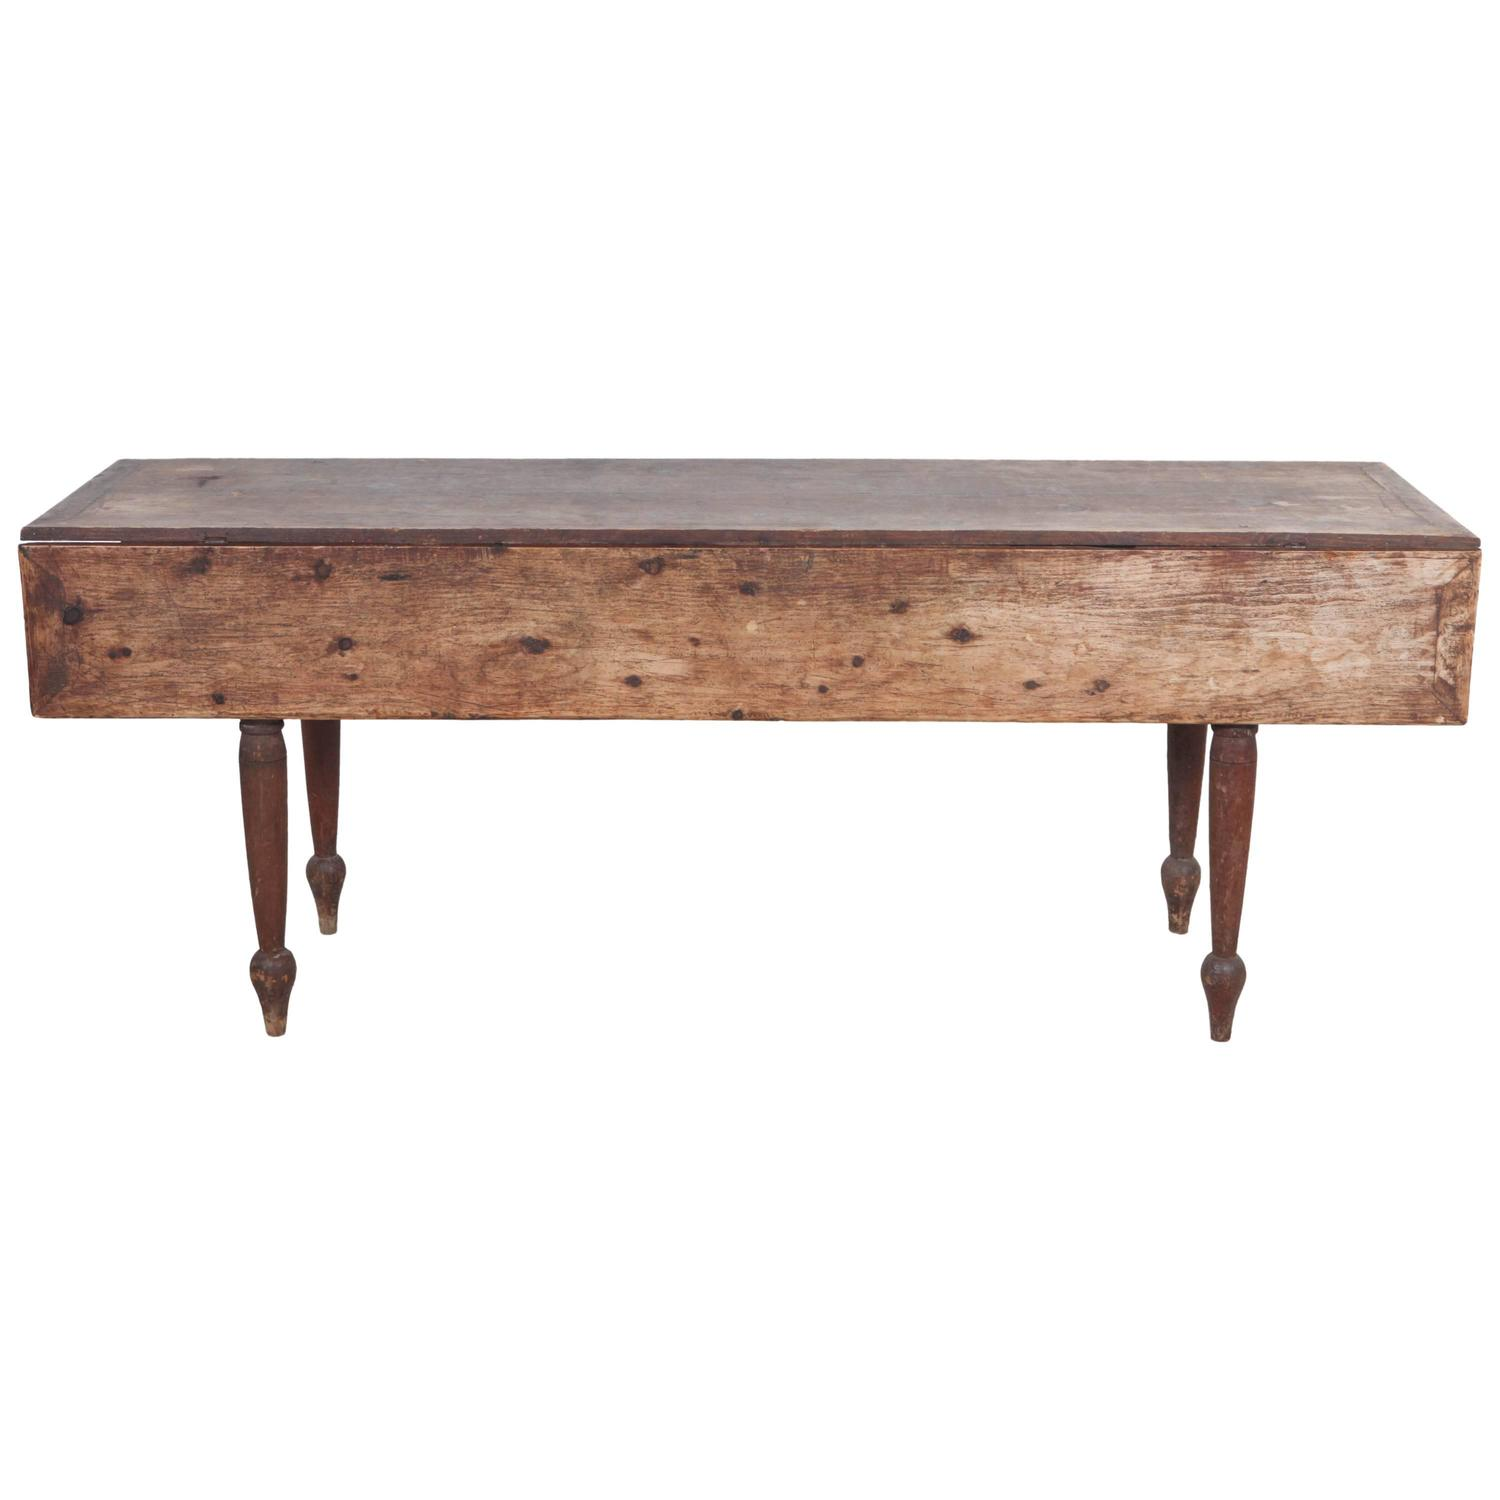 Wooden Table With Leaves ~ Rustic drop leaf wooden table with turned legs at stdibs